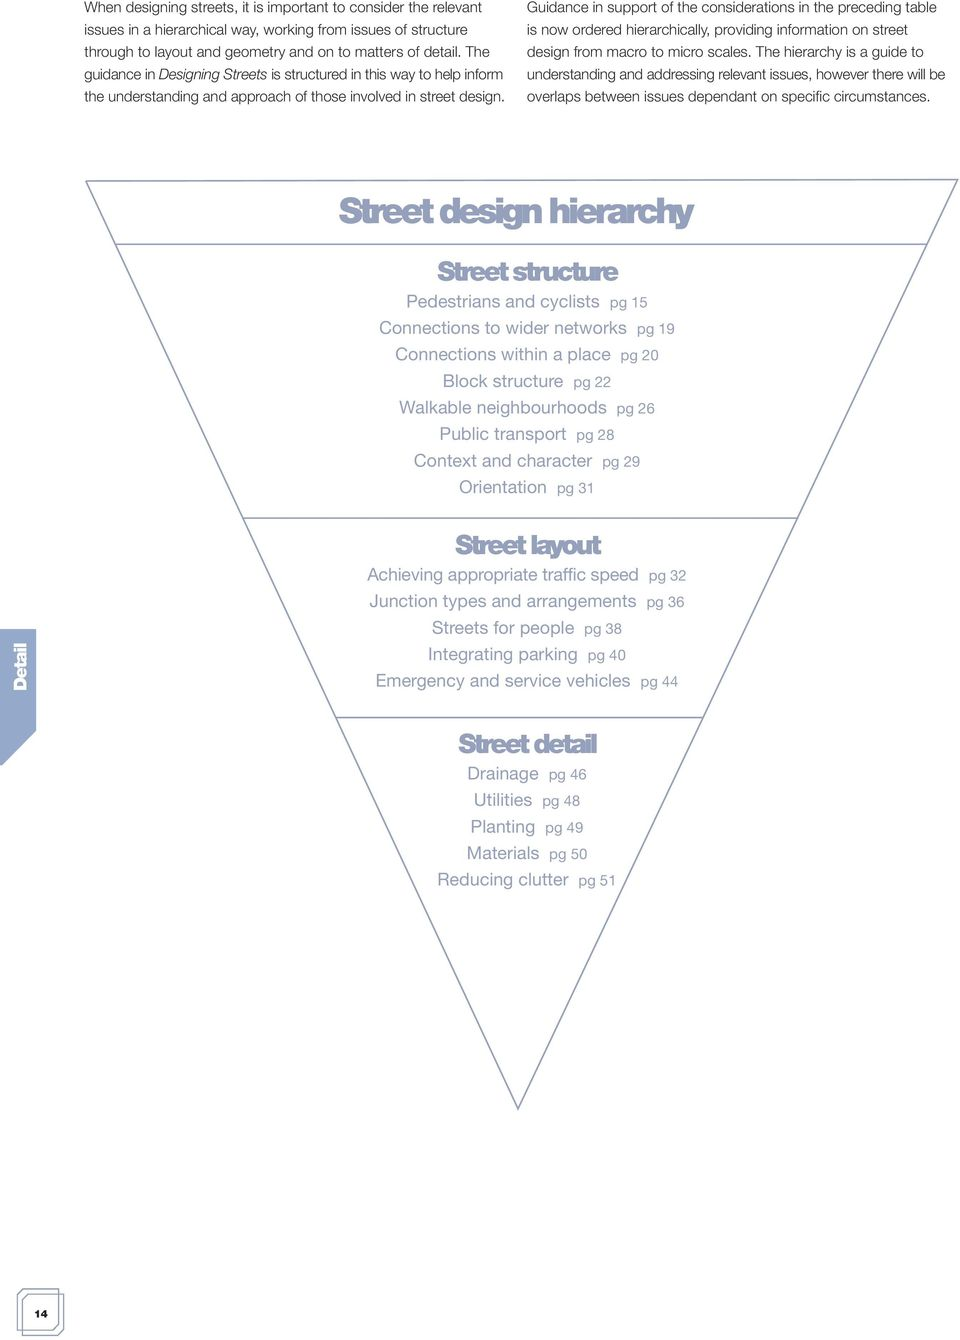 Guidance in support of the considerations in the preceding table is now ordered hierarchically, providing information on street design from macro to micro scales.